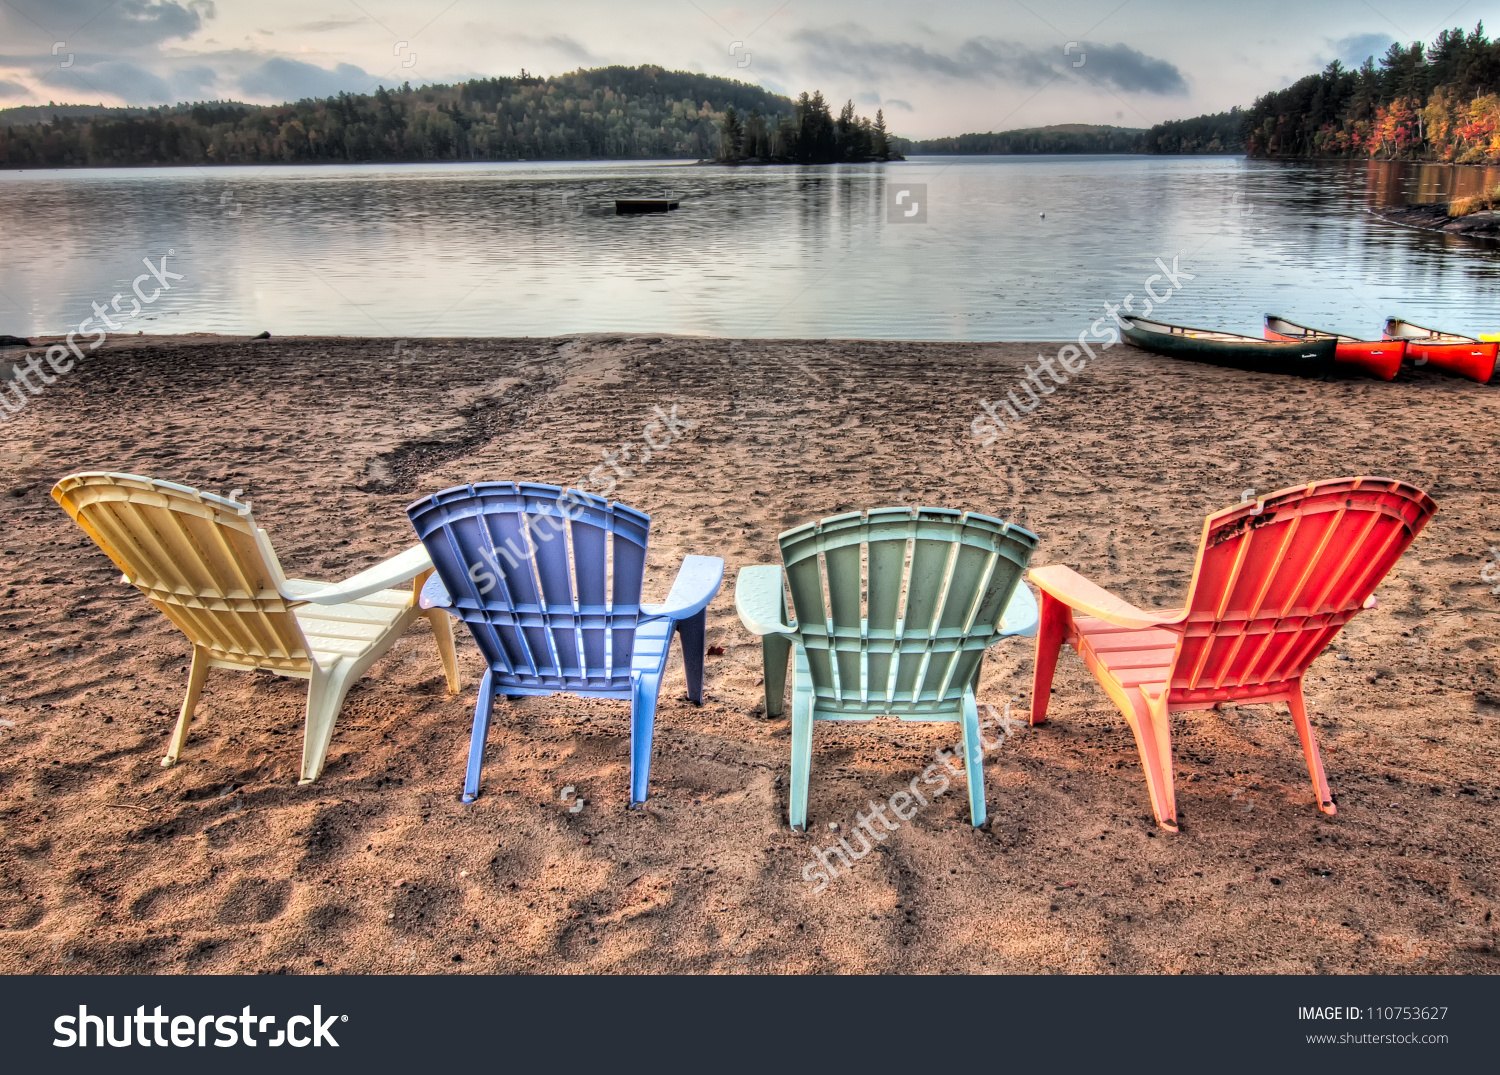 Four Colorful Patio Chairs Overlooking A Lake With Canoes Along.